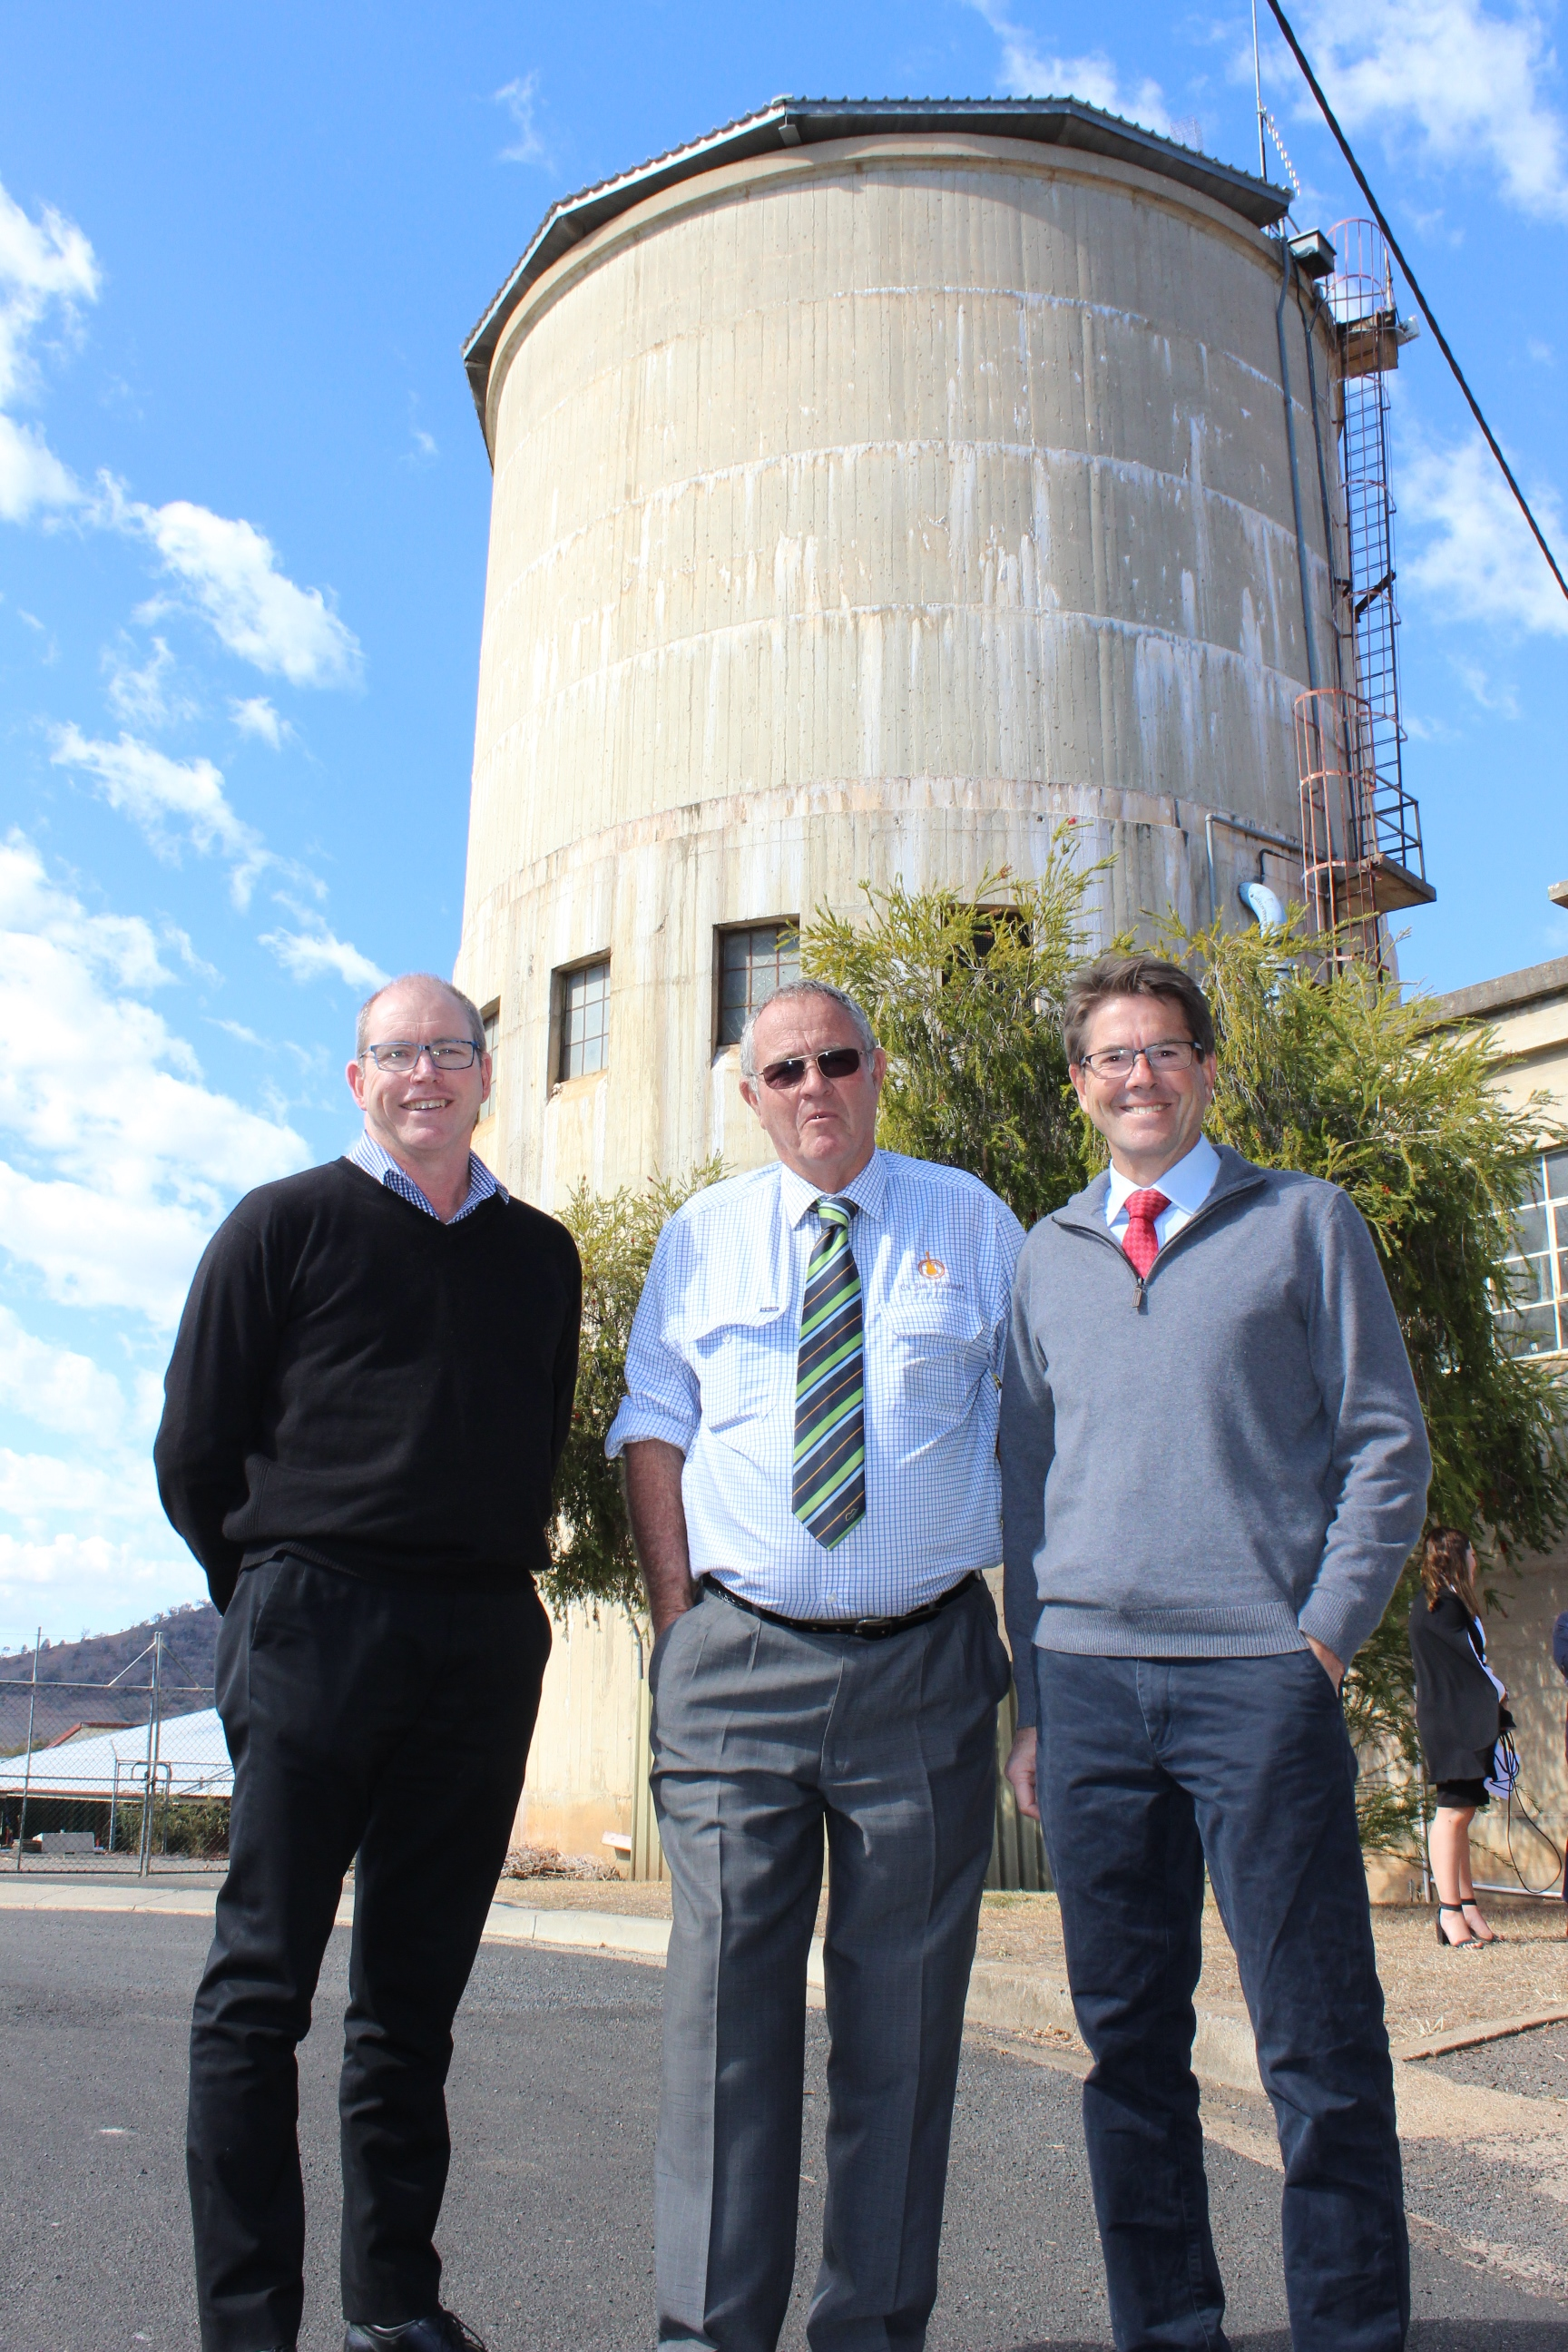 Director of Water & Waste, Cr Jim Maxwell and Kevin Anderson MP